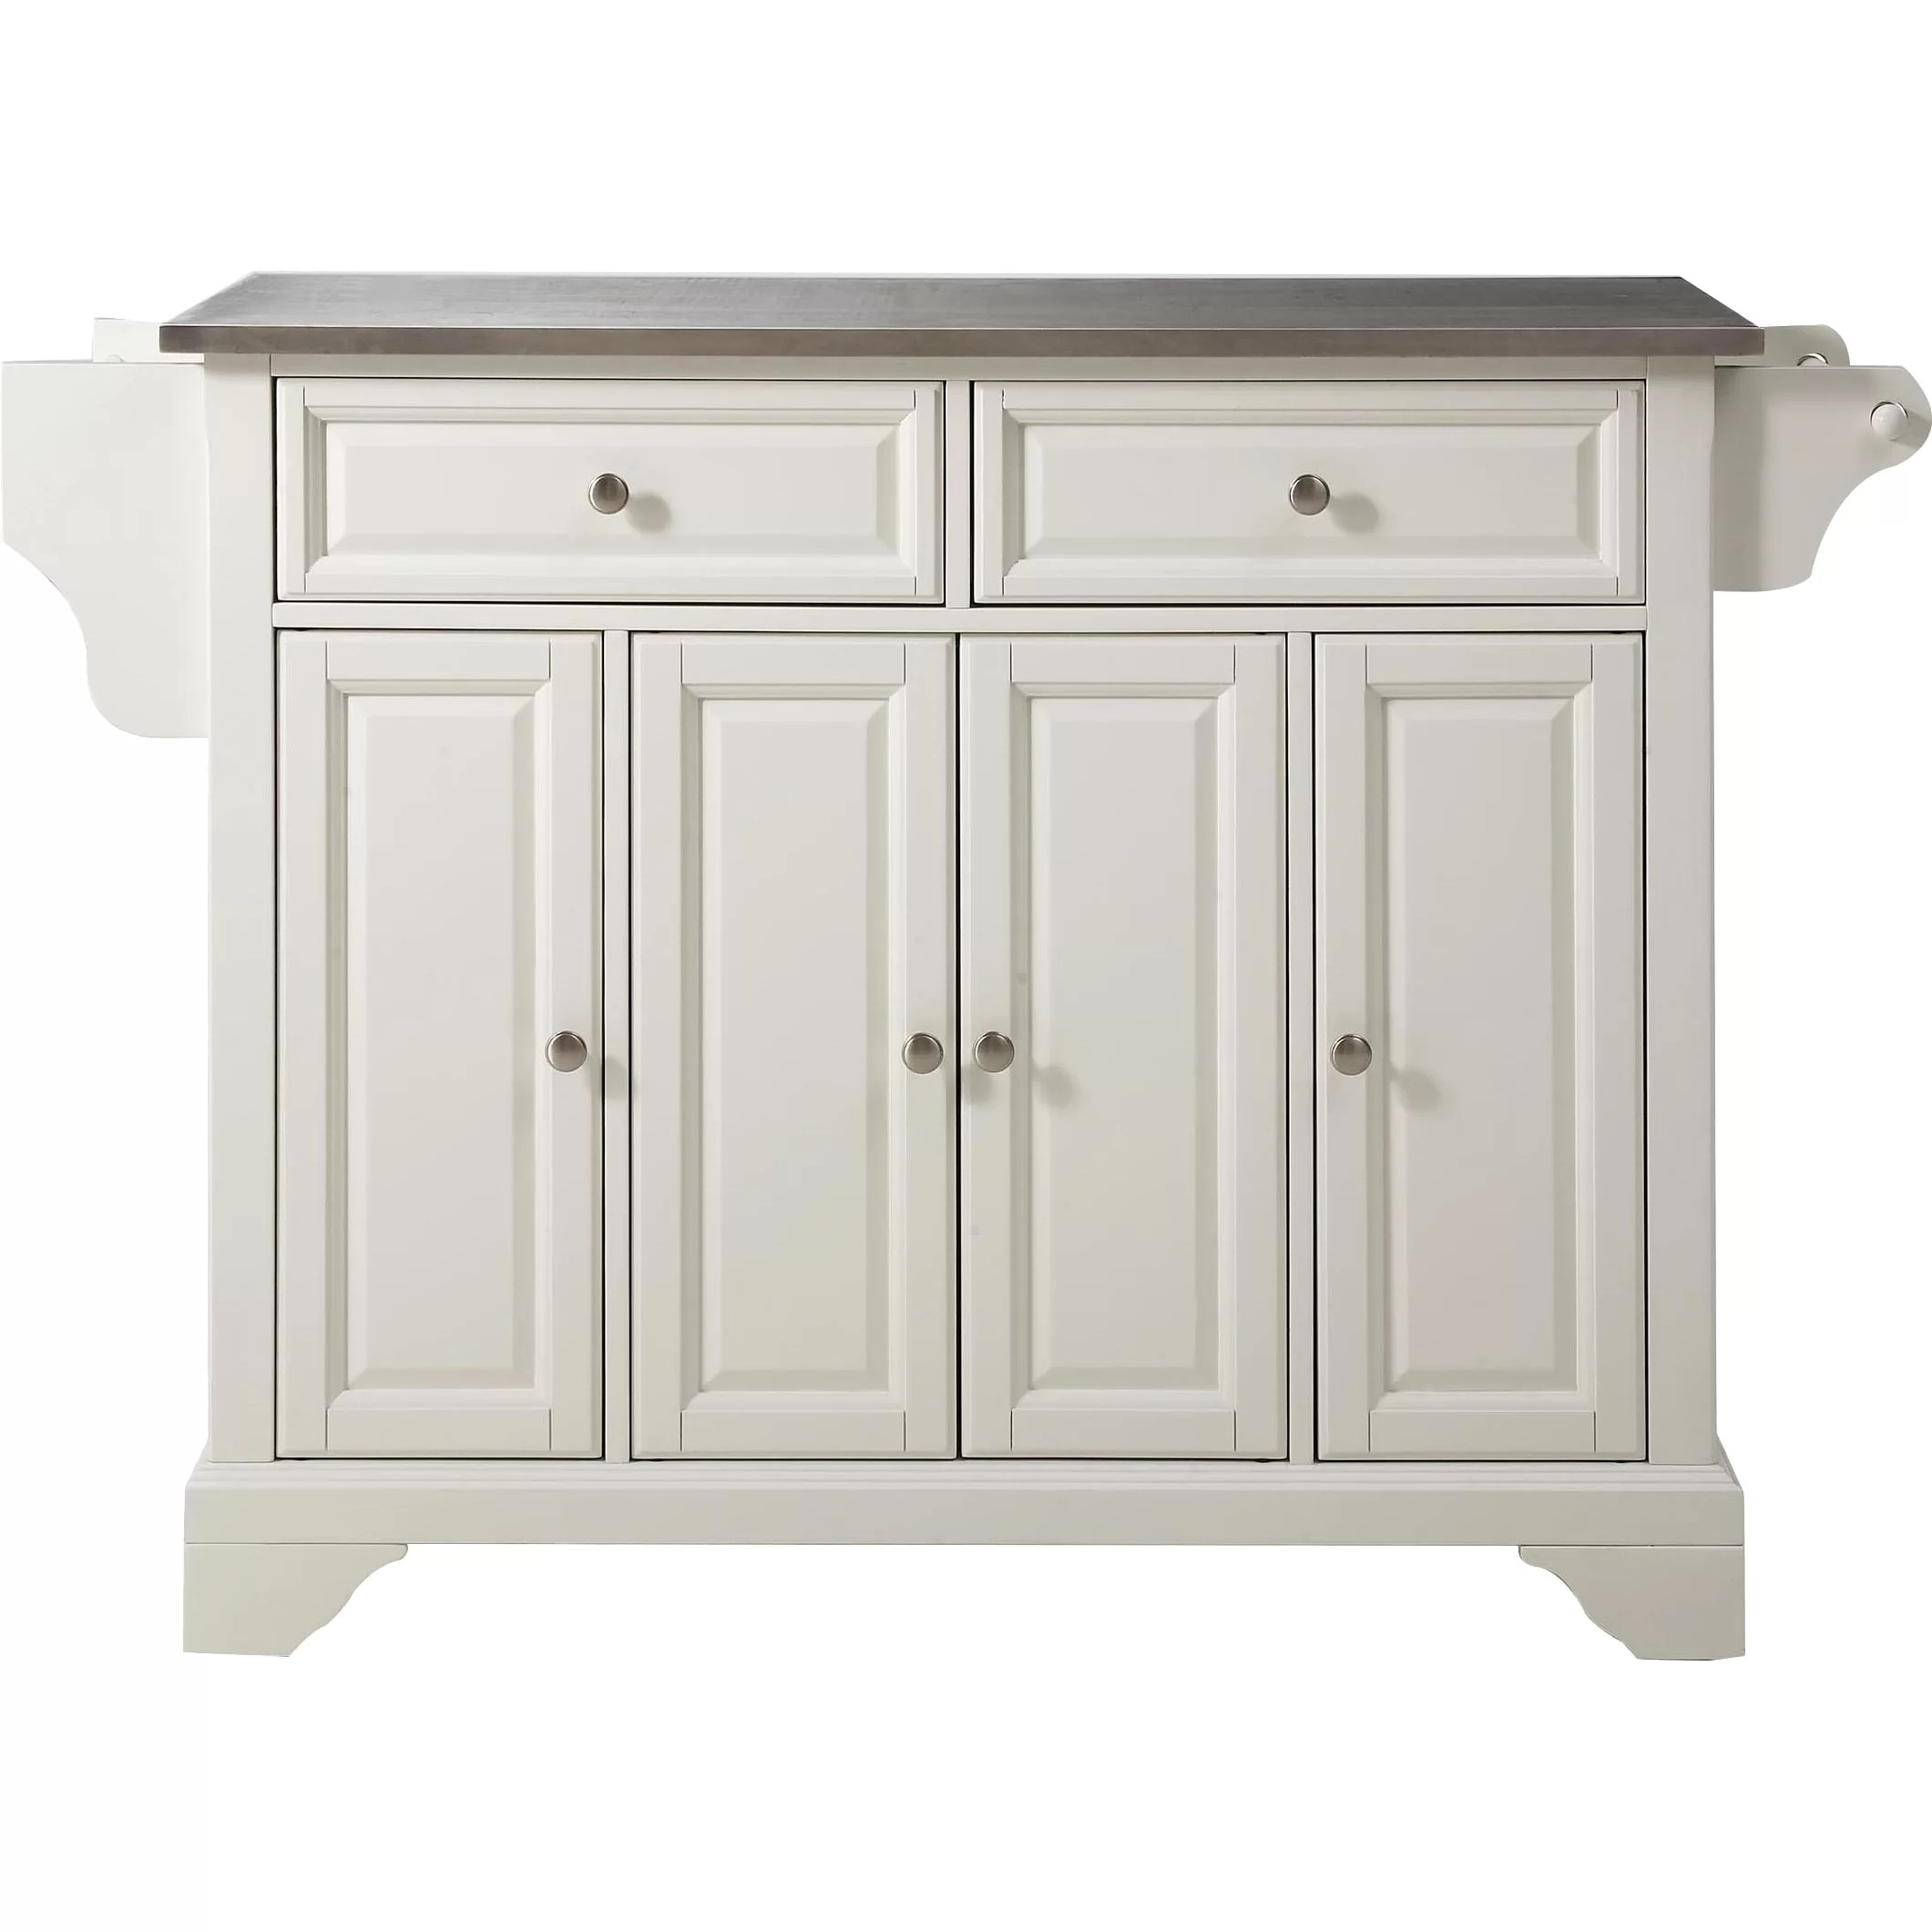 crosley lafayette kitchen island stainless steel top reviews furniture cambridge stainless steel top kitchen island white